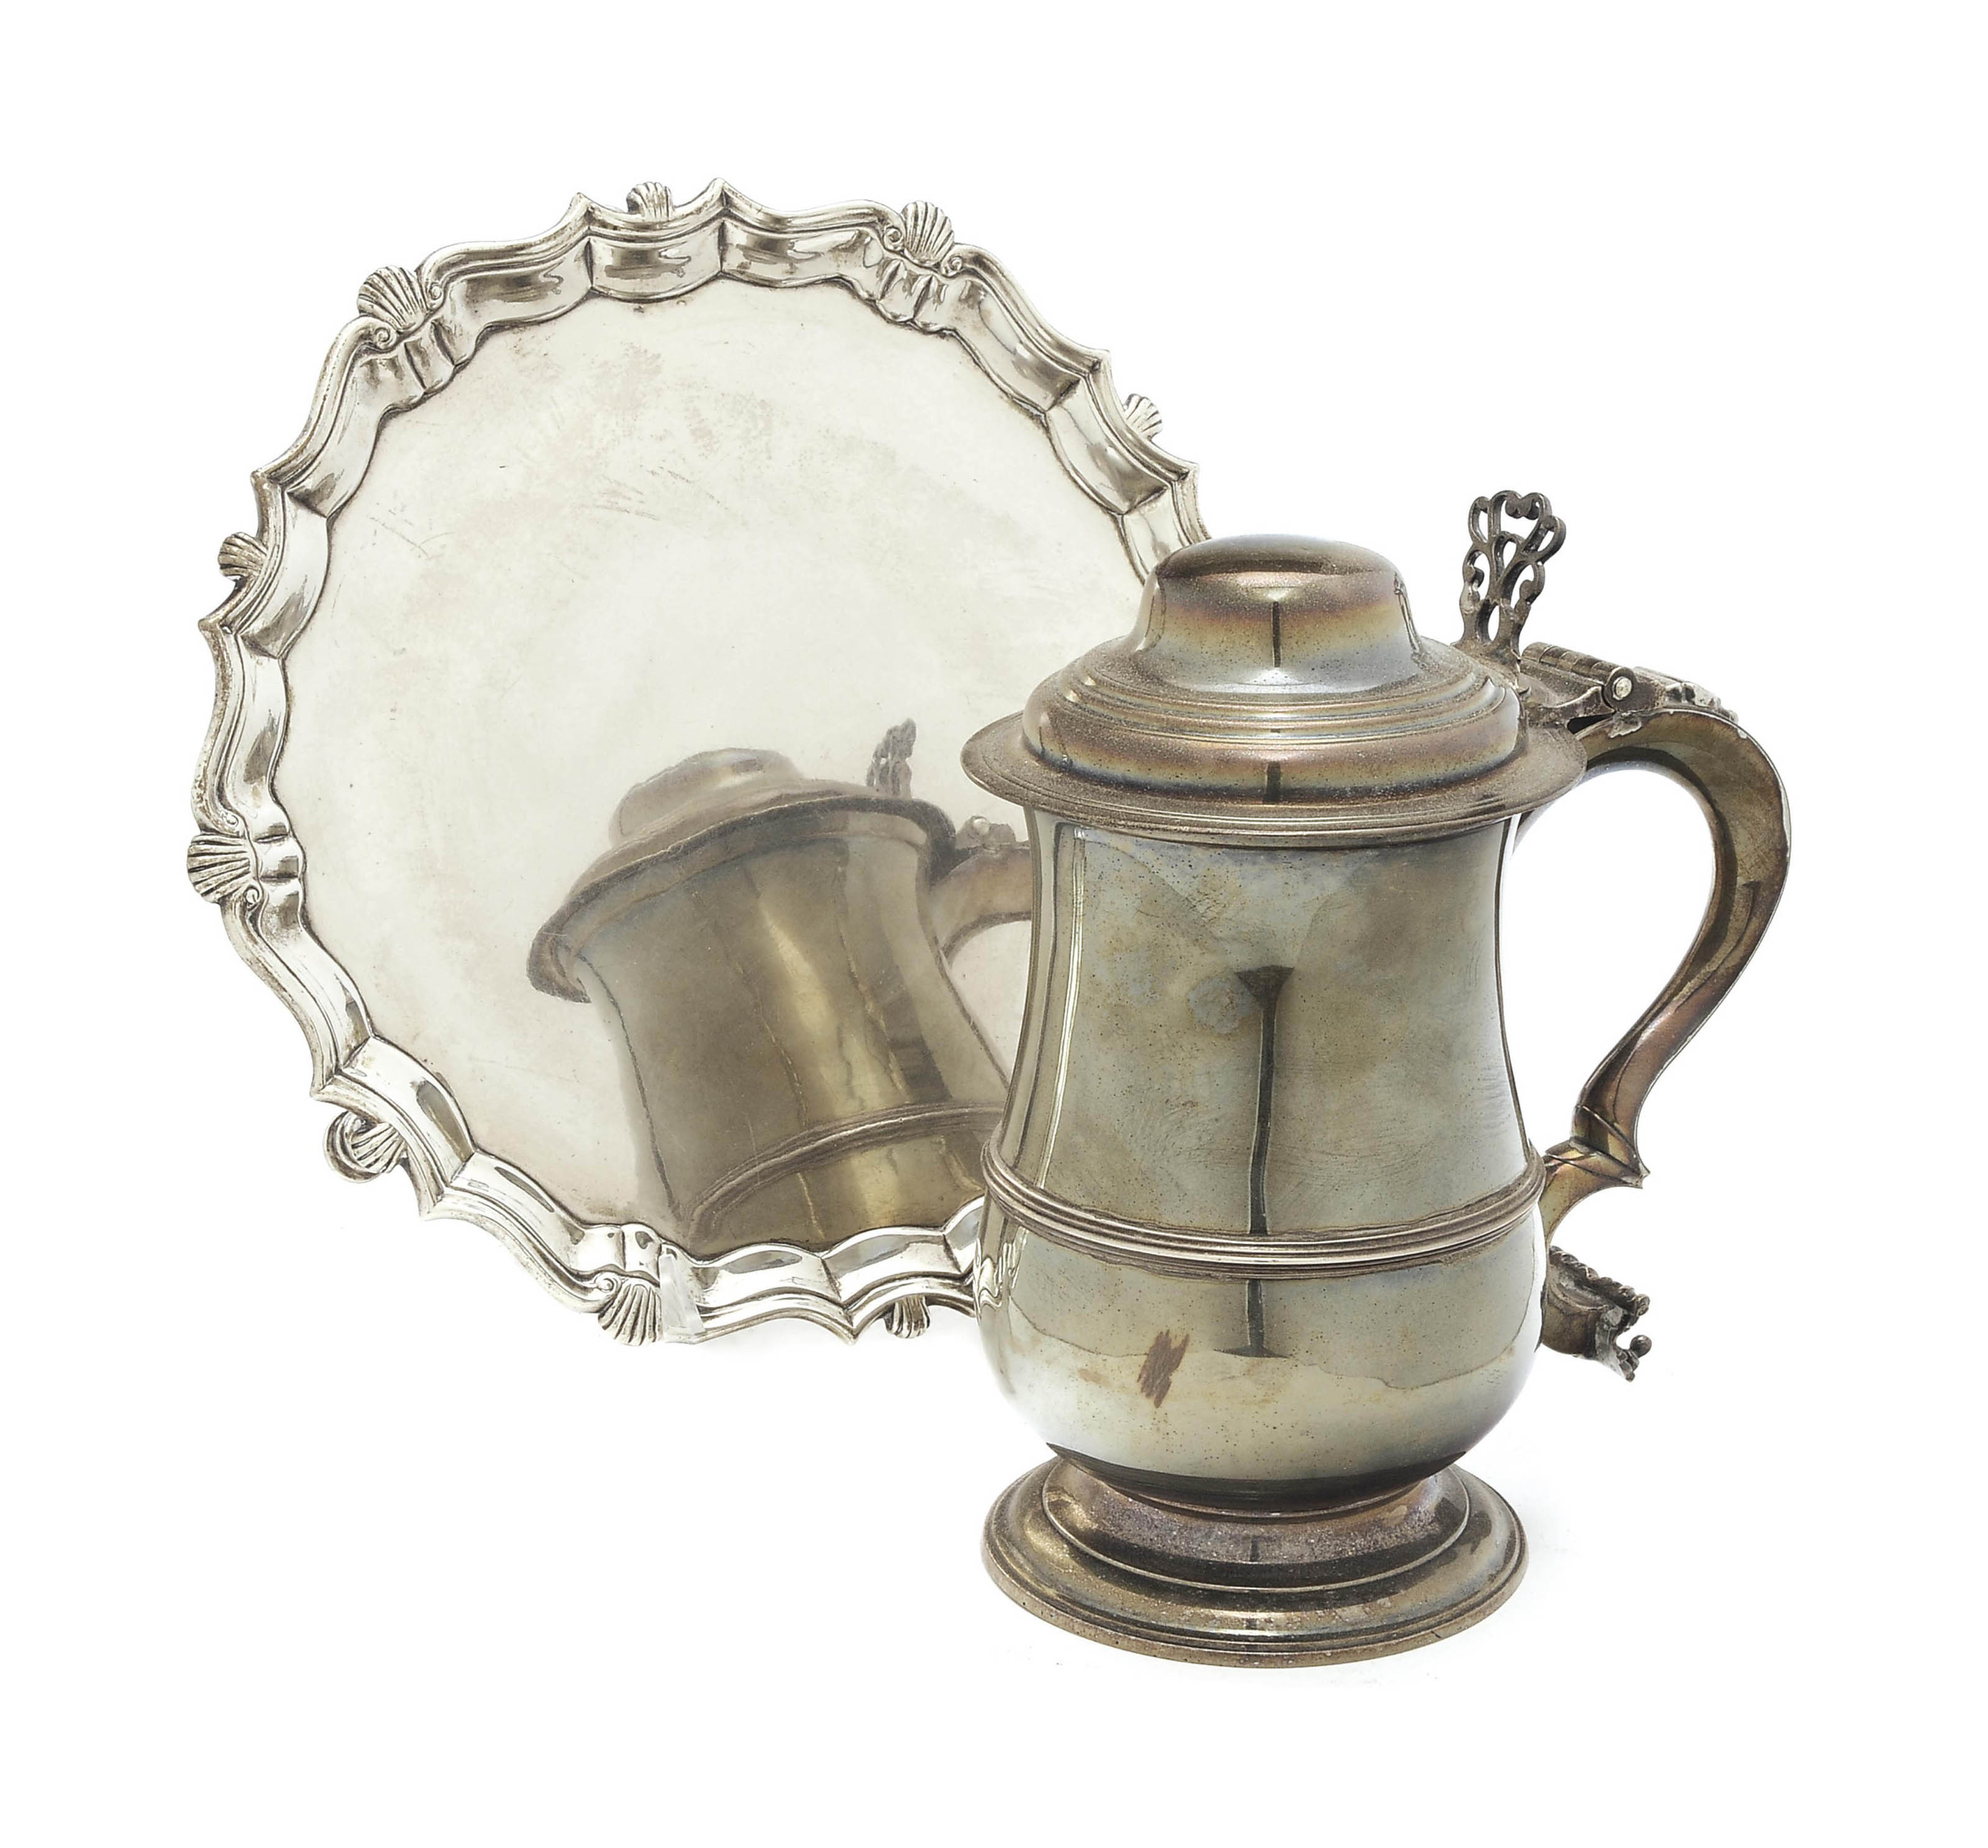 A GEORGIAN SILVER SALVER AND A TANKARD WITH HINGED COVER,